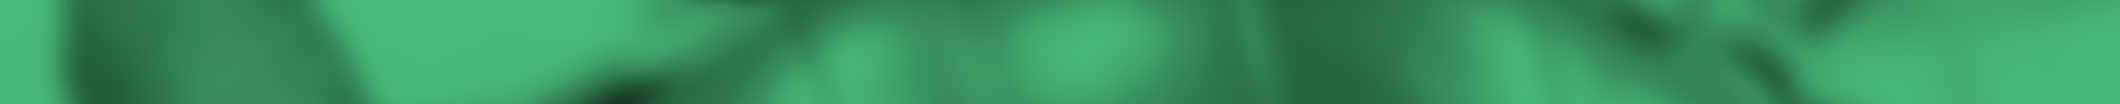 greenpilatesbanner